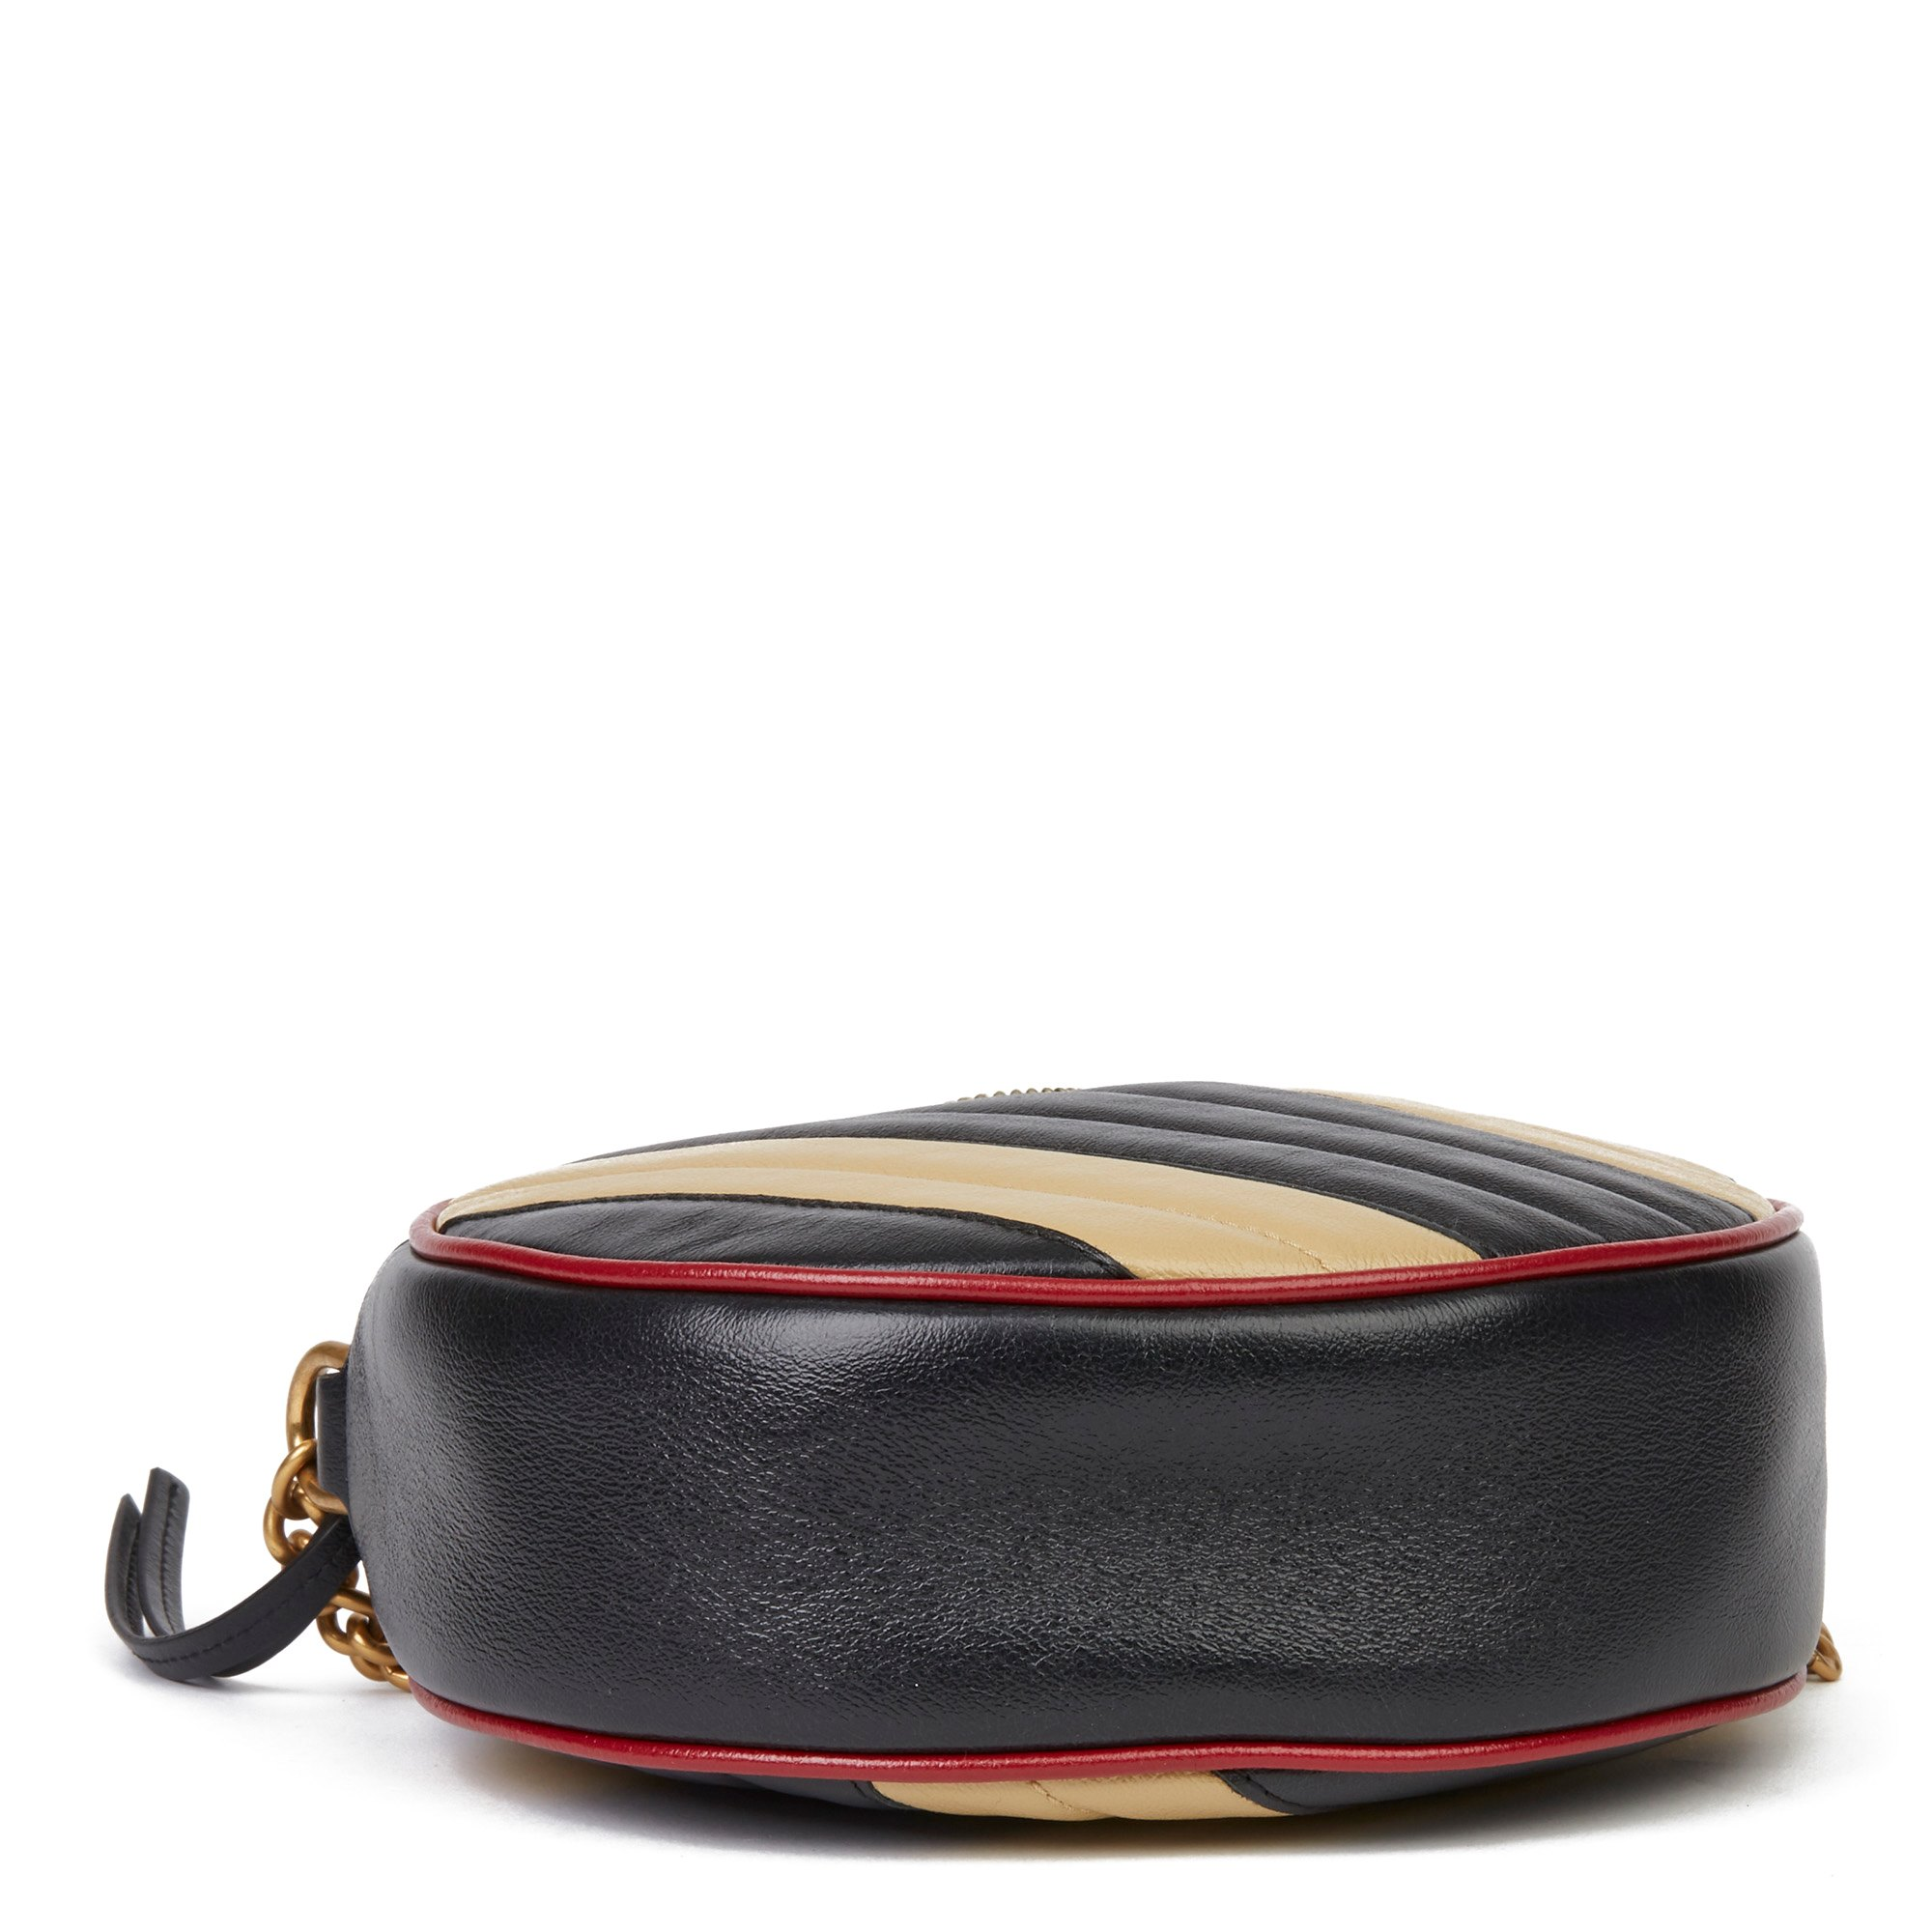 Gucci Black, Cream & Red Diagonal Quilted Aged Calfskin Leather Mini Round Marmont